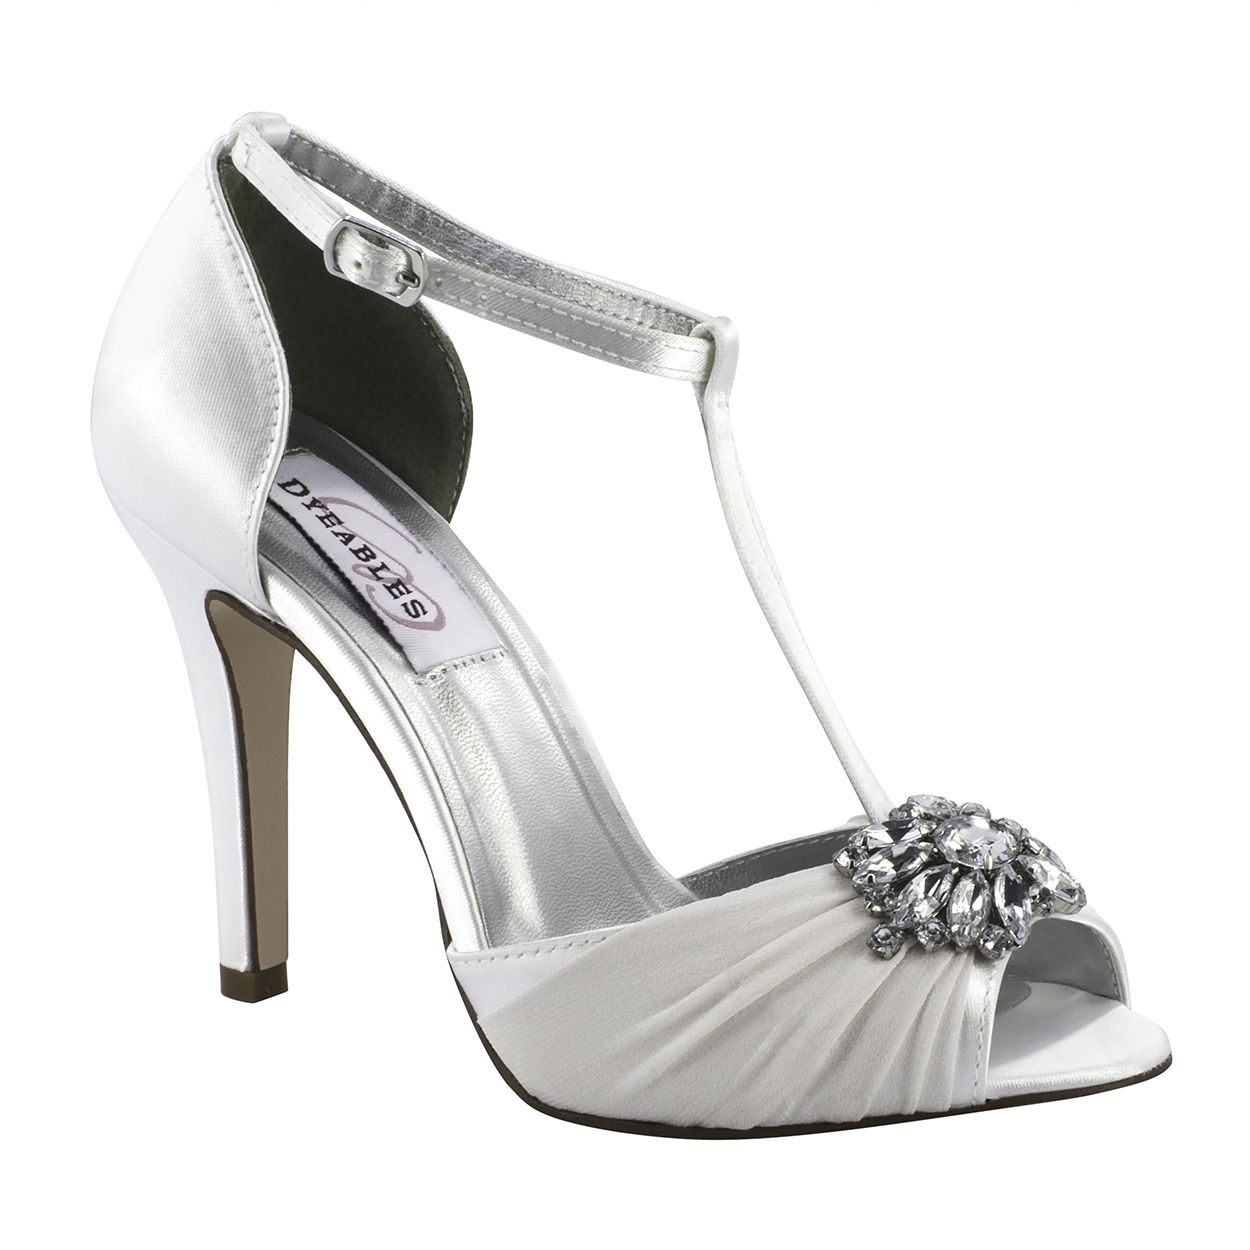 Everly White Satin Bridesmaids Heels Dyeable Shoes T Strap Heels